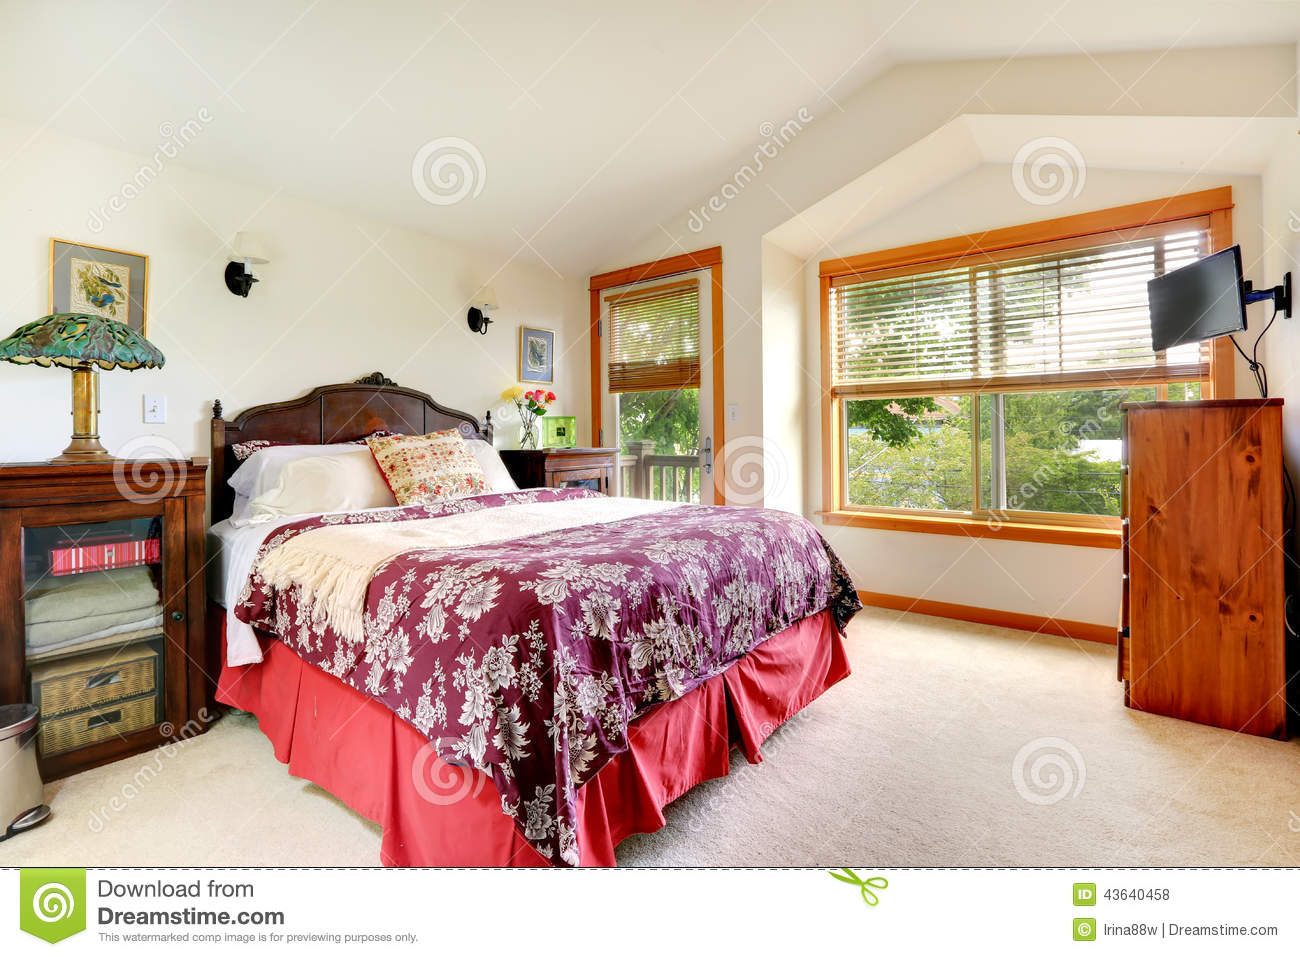 int rieur de chambre coucher dans la maison am ricaine photo stock image 43640458. Black Bedroom Furniture Sets. Home Design Ideas